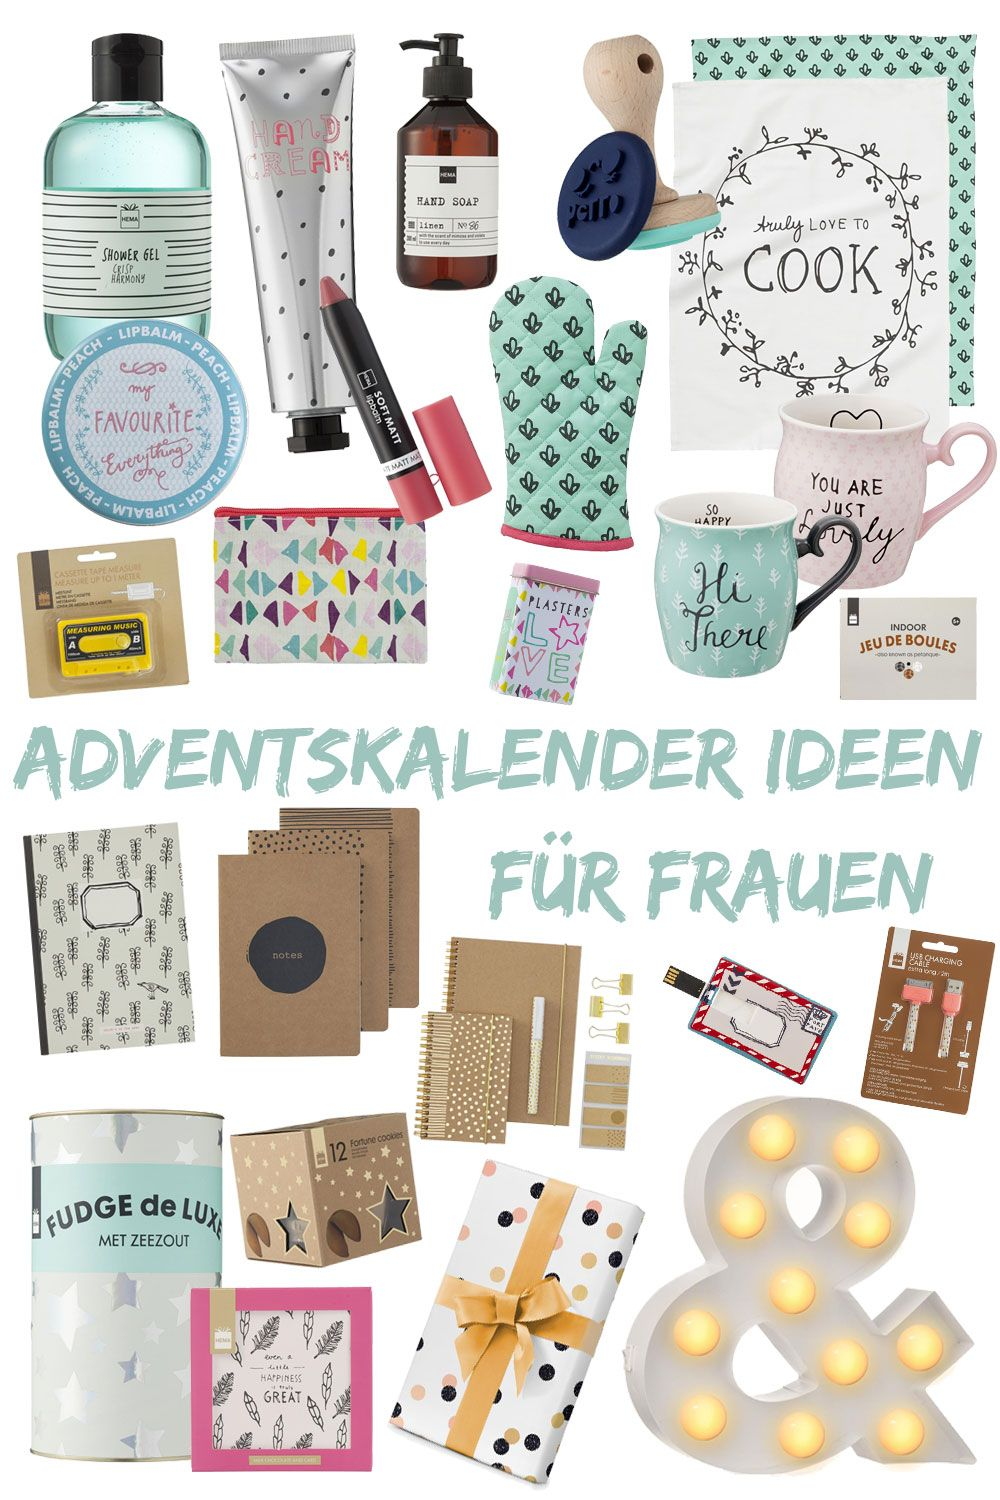 adventskalender bef llen ideen f r frauen diy geschenkideen pinterest adventskalender. Black Bedroom Furniture Sets. Home Design Ideas